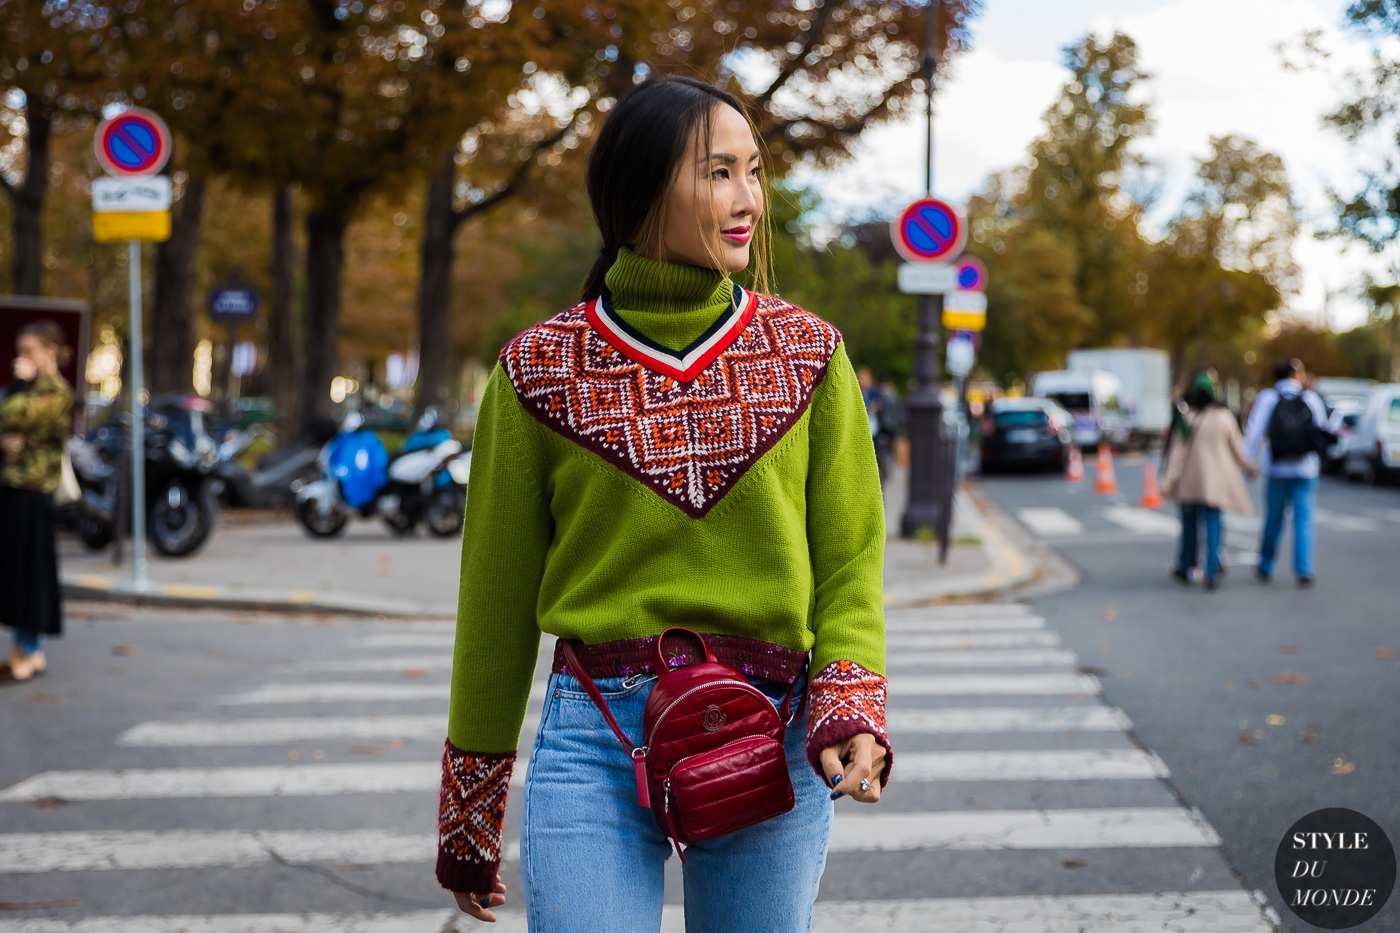 Chriselle Lim by STYLEDUMONDE Street Style Fashion Photography_48A3692